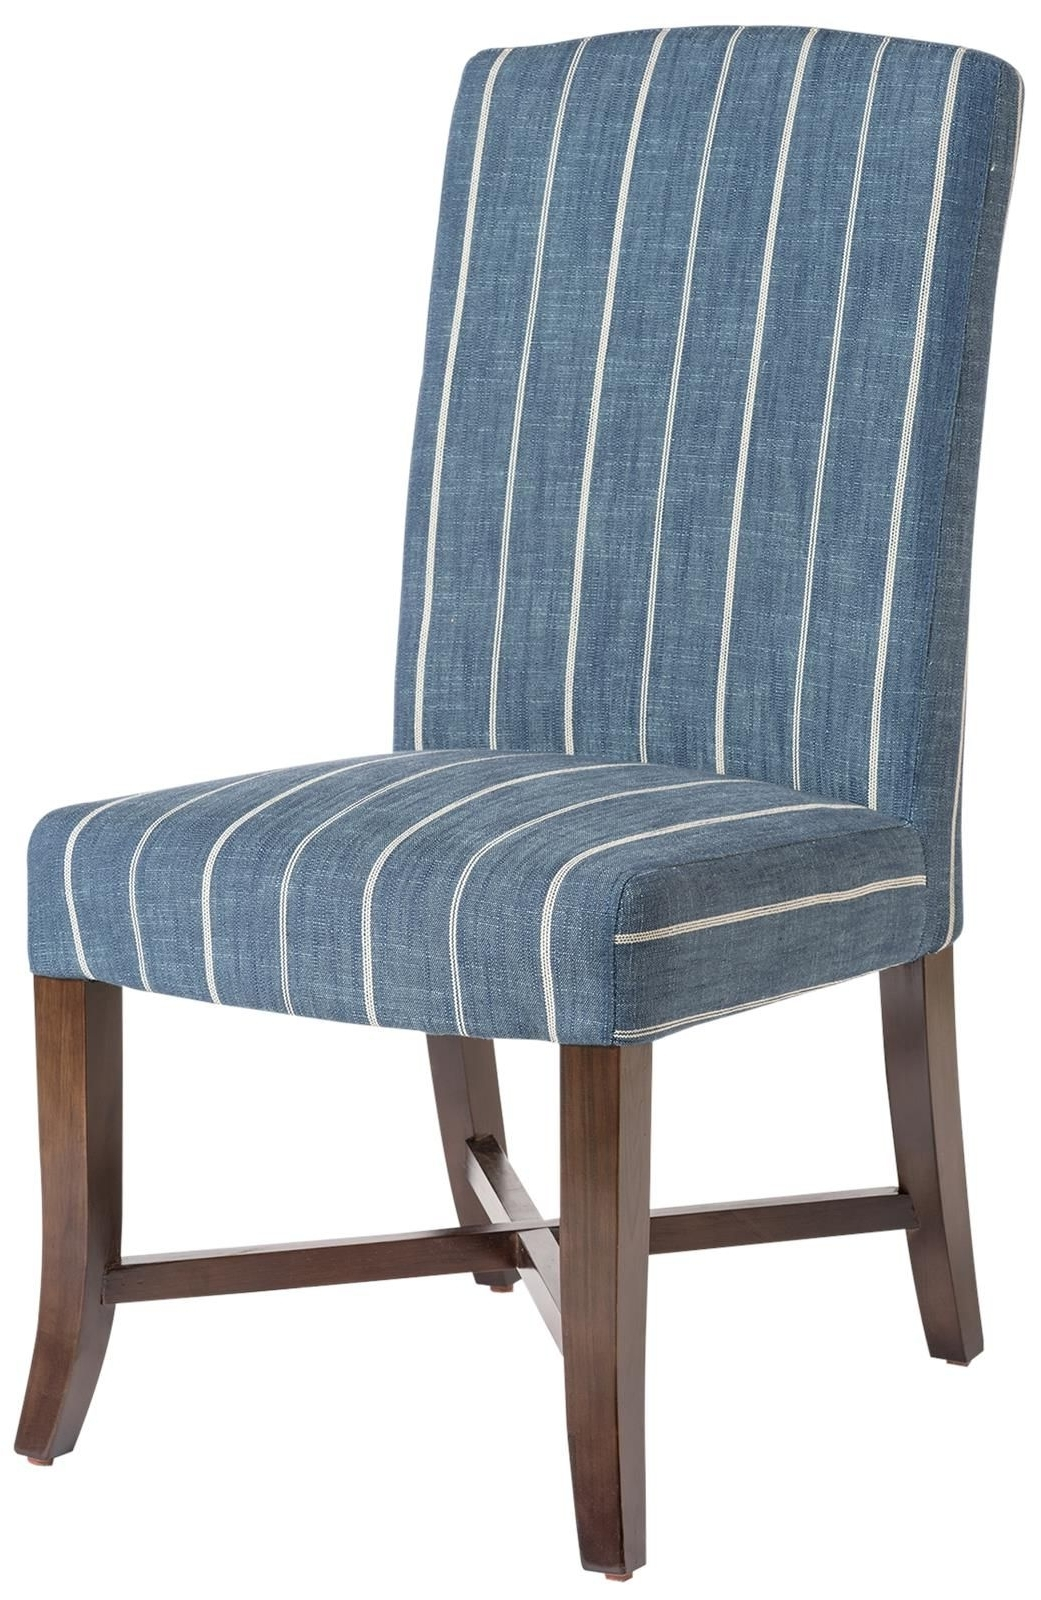 Blue Stripe Dining Chairs For Popular Dining Chair Mercer Revere Indigo Blue Stripe Fabric Dark Walnut (View 3 of 20)